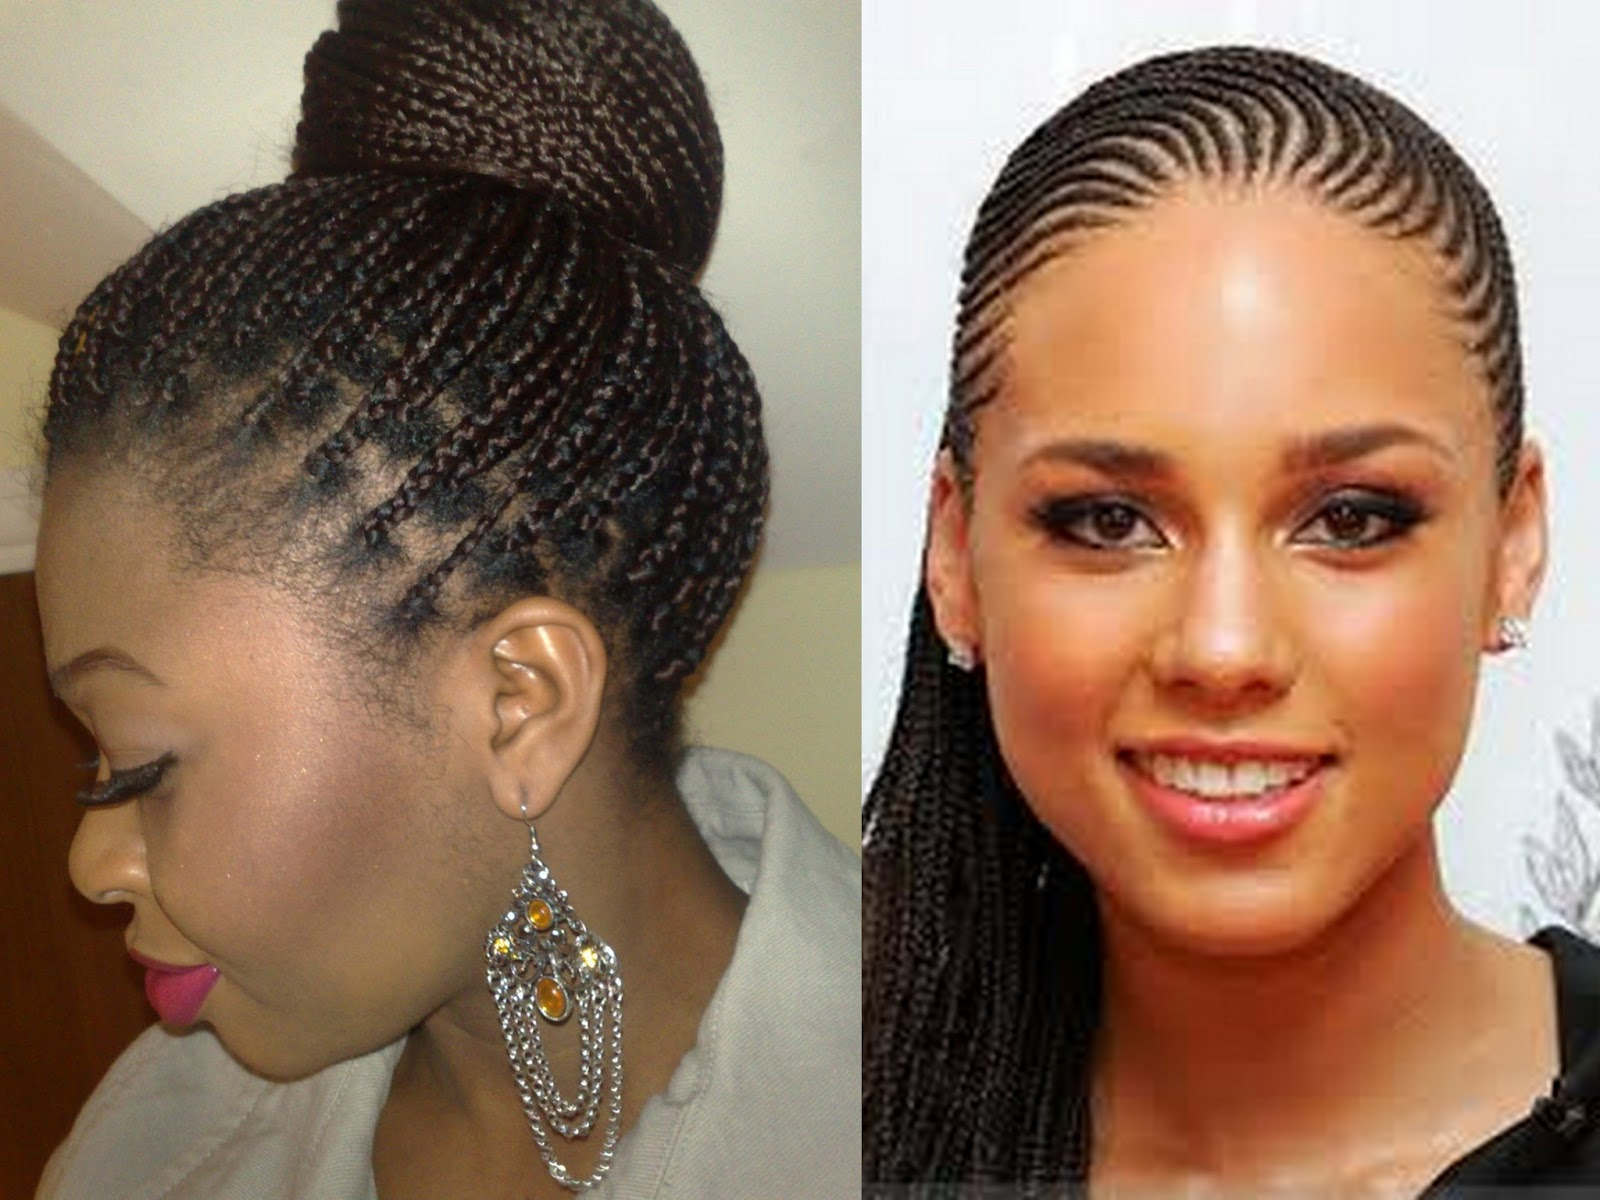 Amazing Ghana Weaving Hairstyles Trending Around the World For ...